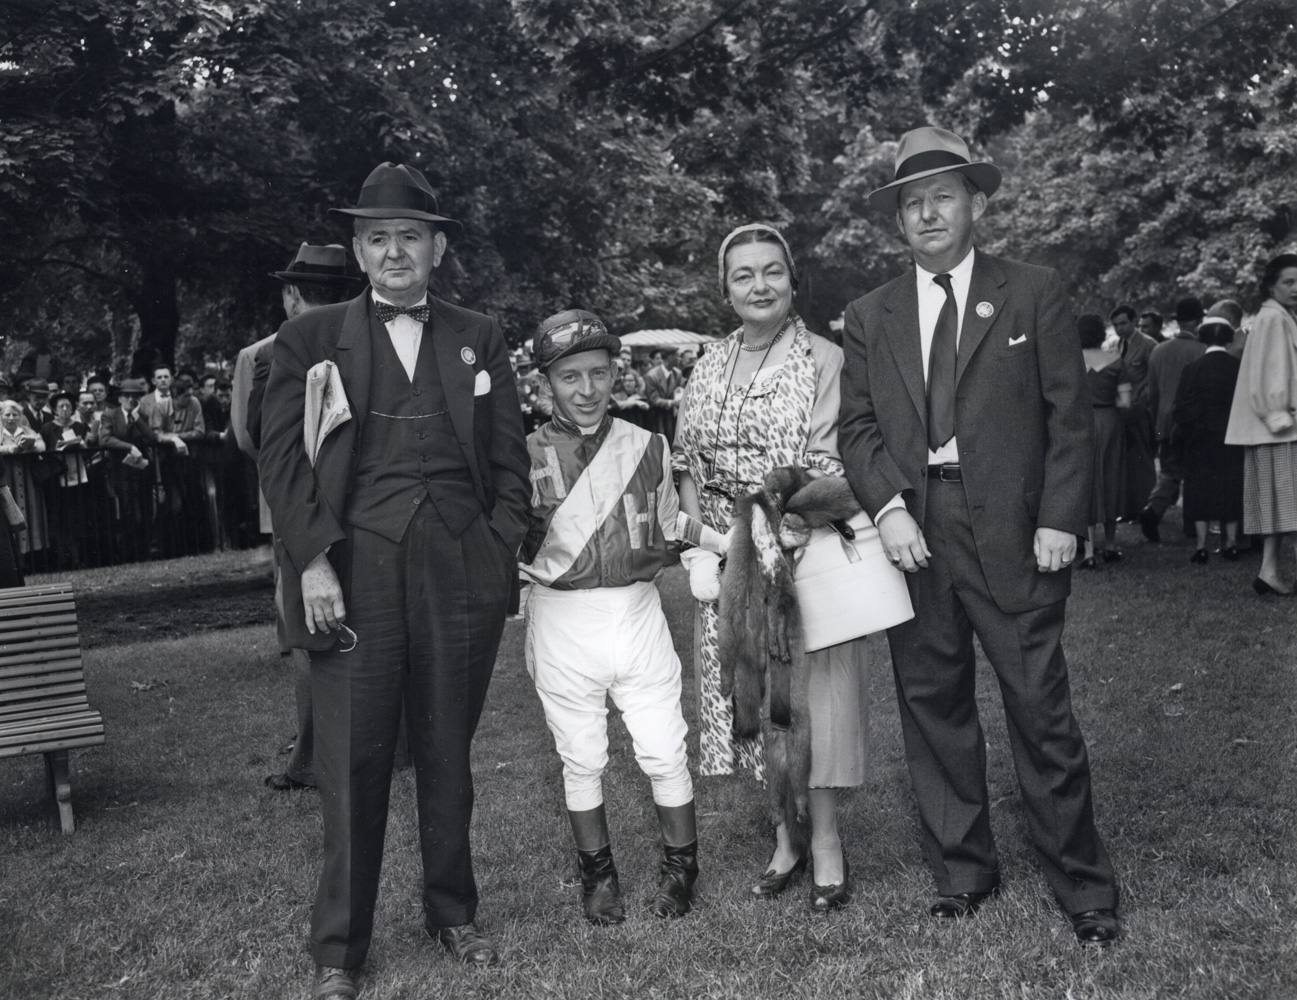 Mr. A. E. Reuben, jockey John Adams, Mrs. A. E. Reuben, and Harry Trotesk in the paddock at Belmont, May 1954 (Keeneland Library Morgan Collection/Museum Collection)